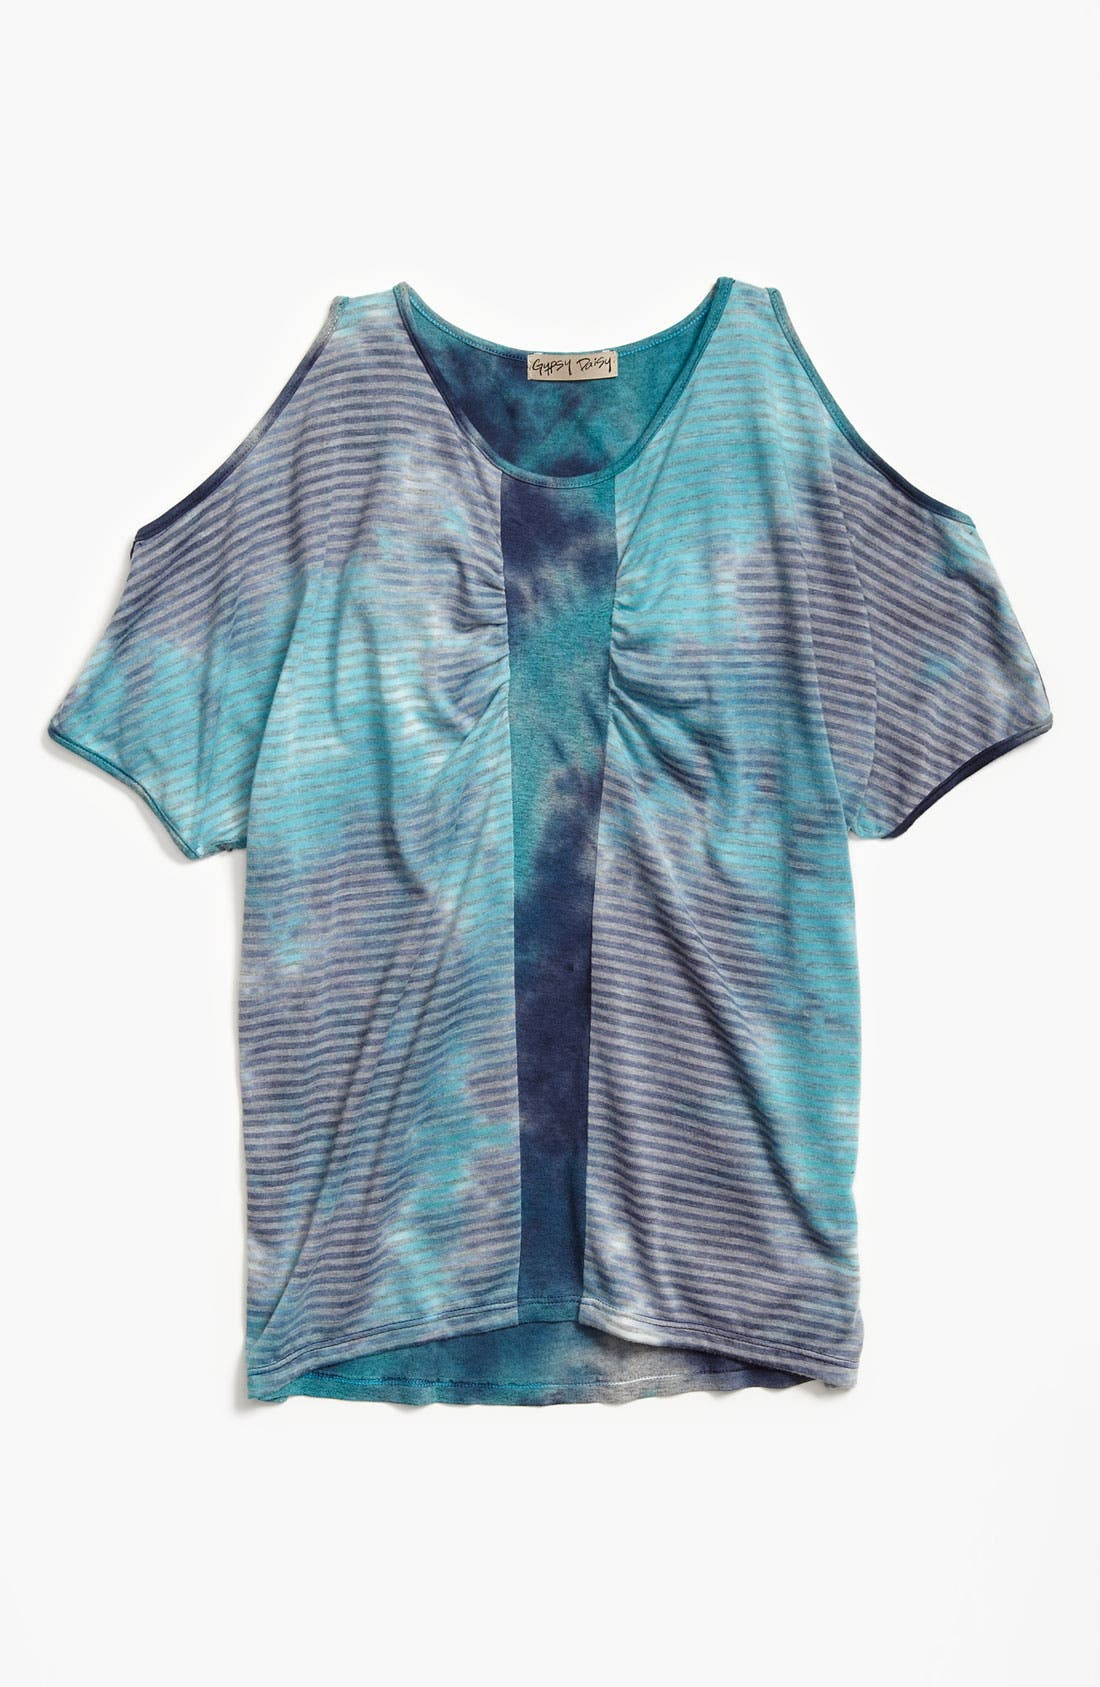 Alternate Image 1 Selected - Gypsy Daisy Tie Dye Top (Big Girls)